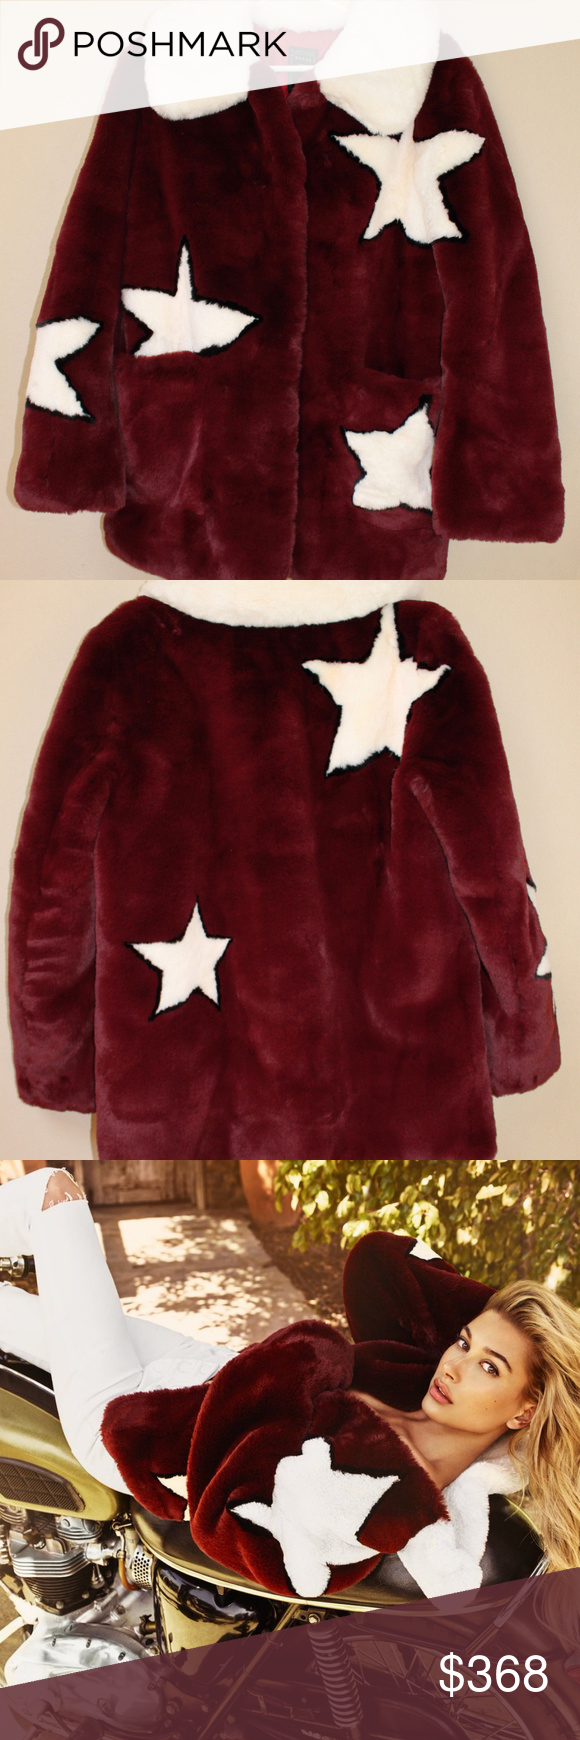 Guess Faux Fur Star Jacket Red Celebrity Coat Nyfw Red Jacket Clothes Design Coat [ 1740 x 580 Pixel ]